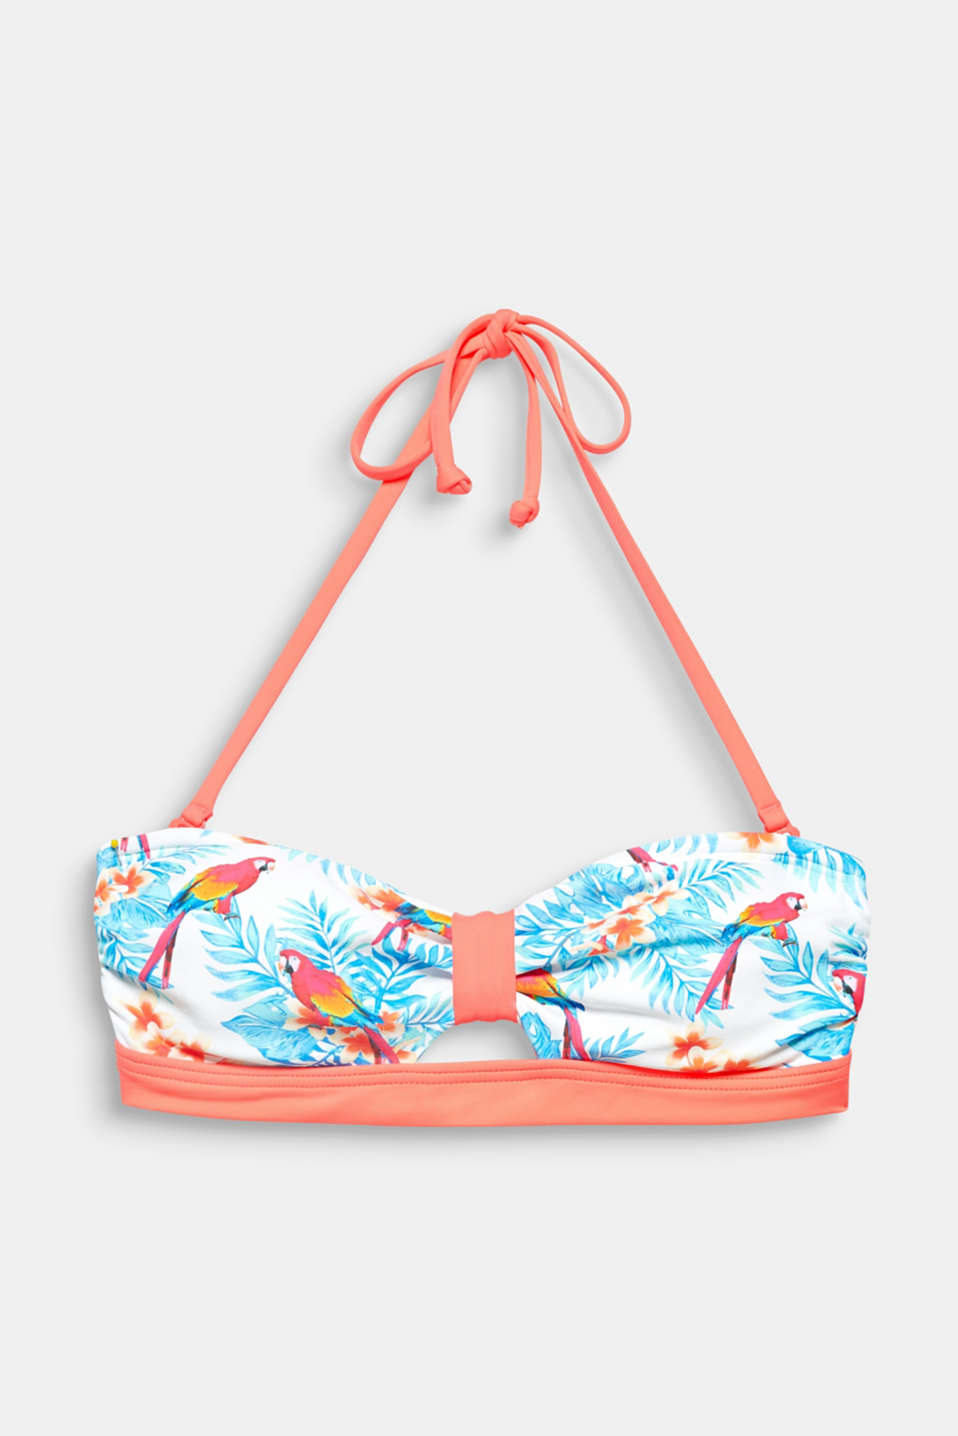 MALIBU BEACH collection – colourful parrots and decorative leaves give this padded bandeau top with detachable halterneck ties its tropical flair!